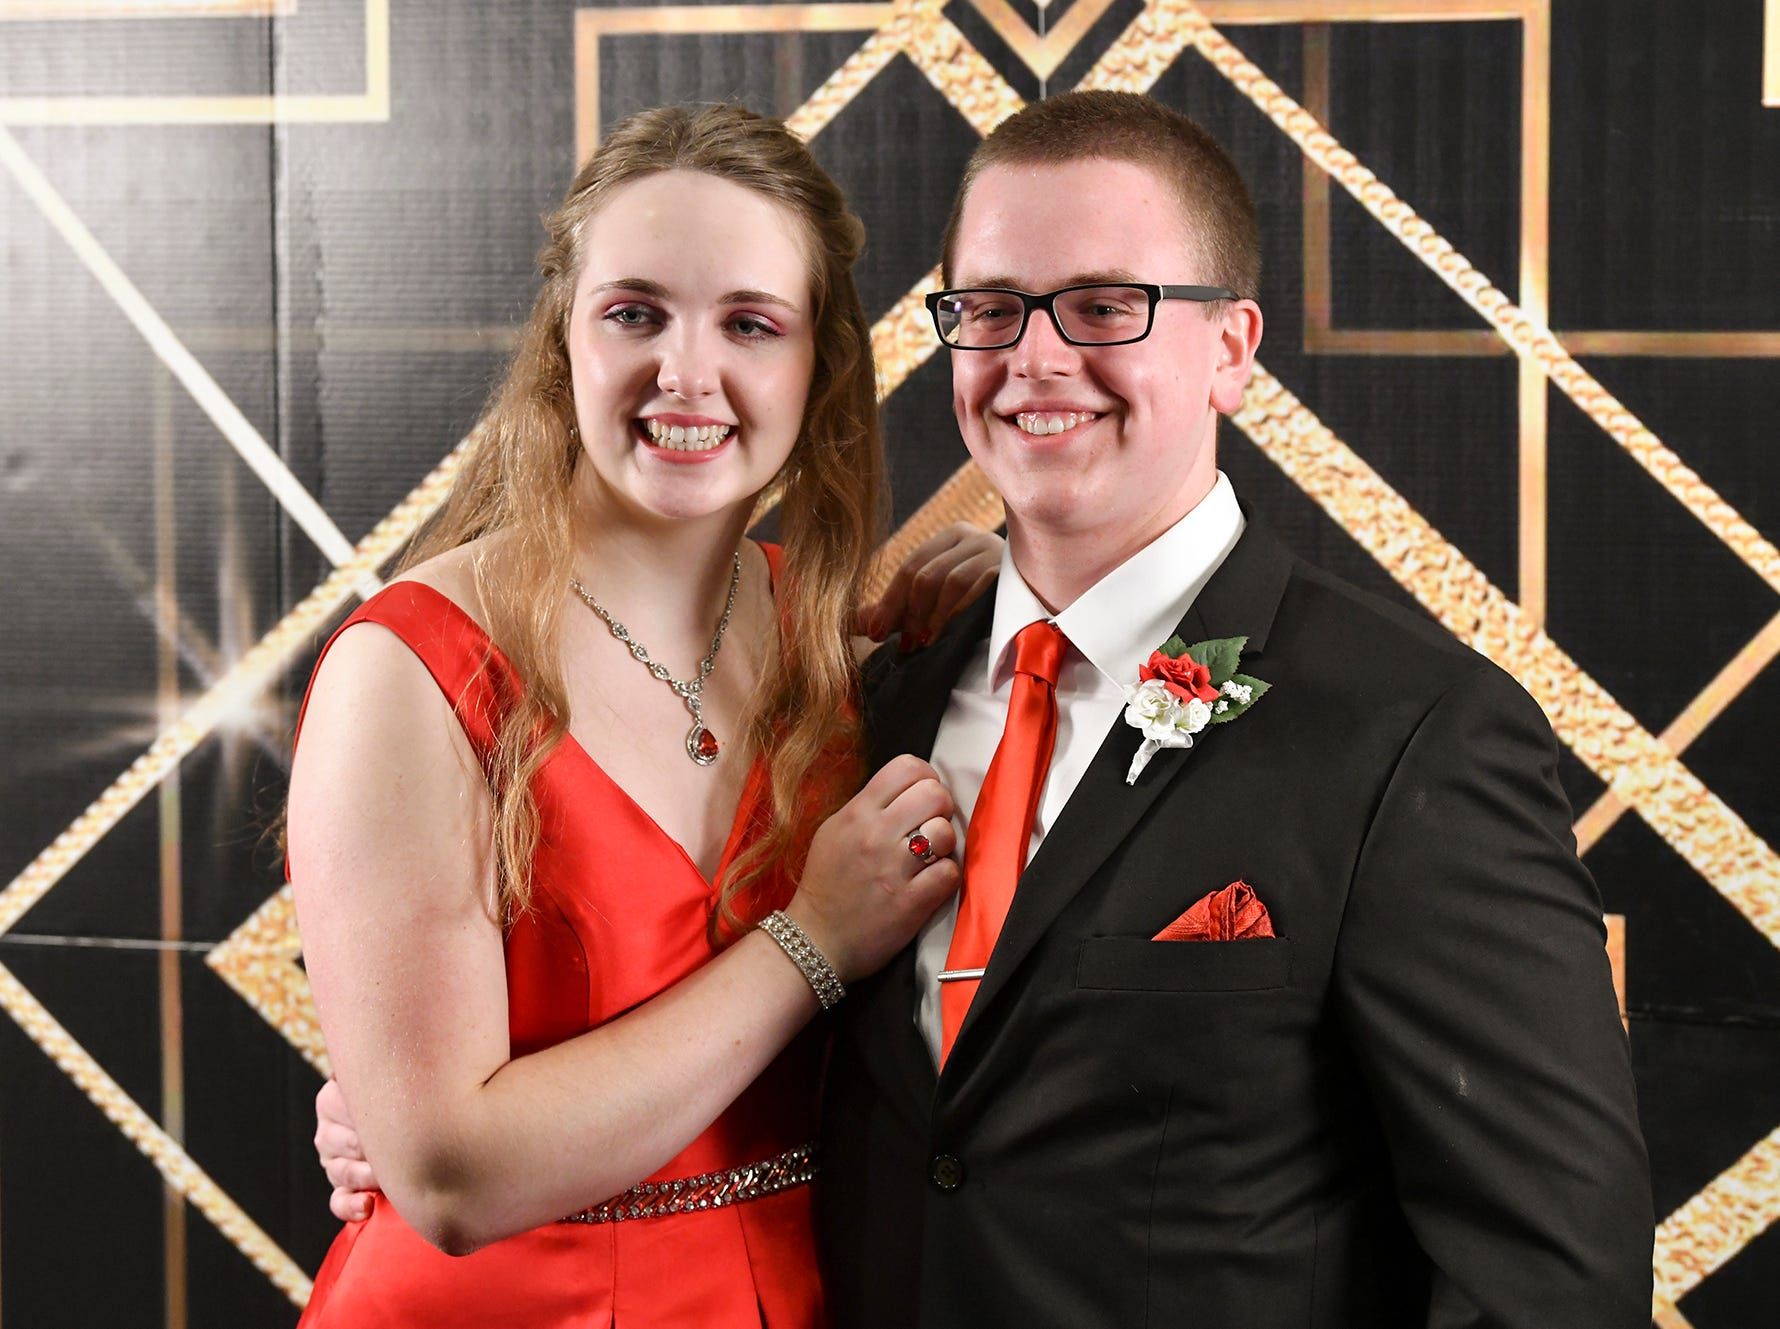 Alexis Studinski and Josh Killmer pose for a photograph on a Great Gatsby-themed backround before the start of prom grand march Saturday, April 6, at Albany High School.